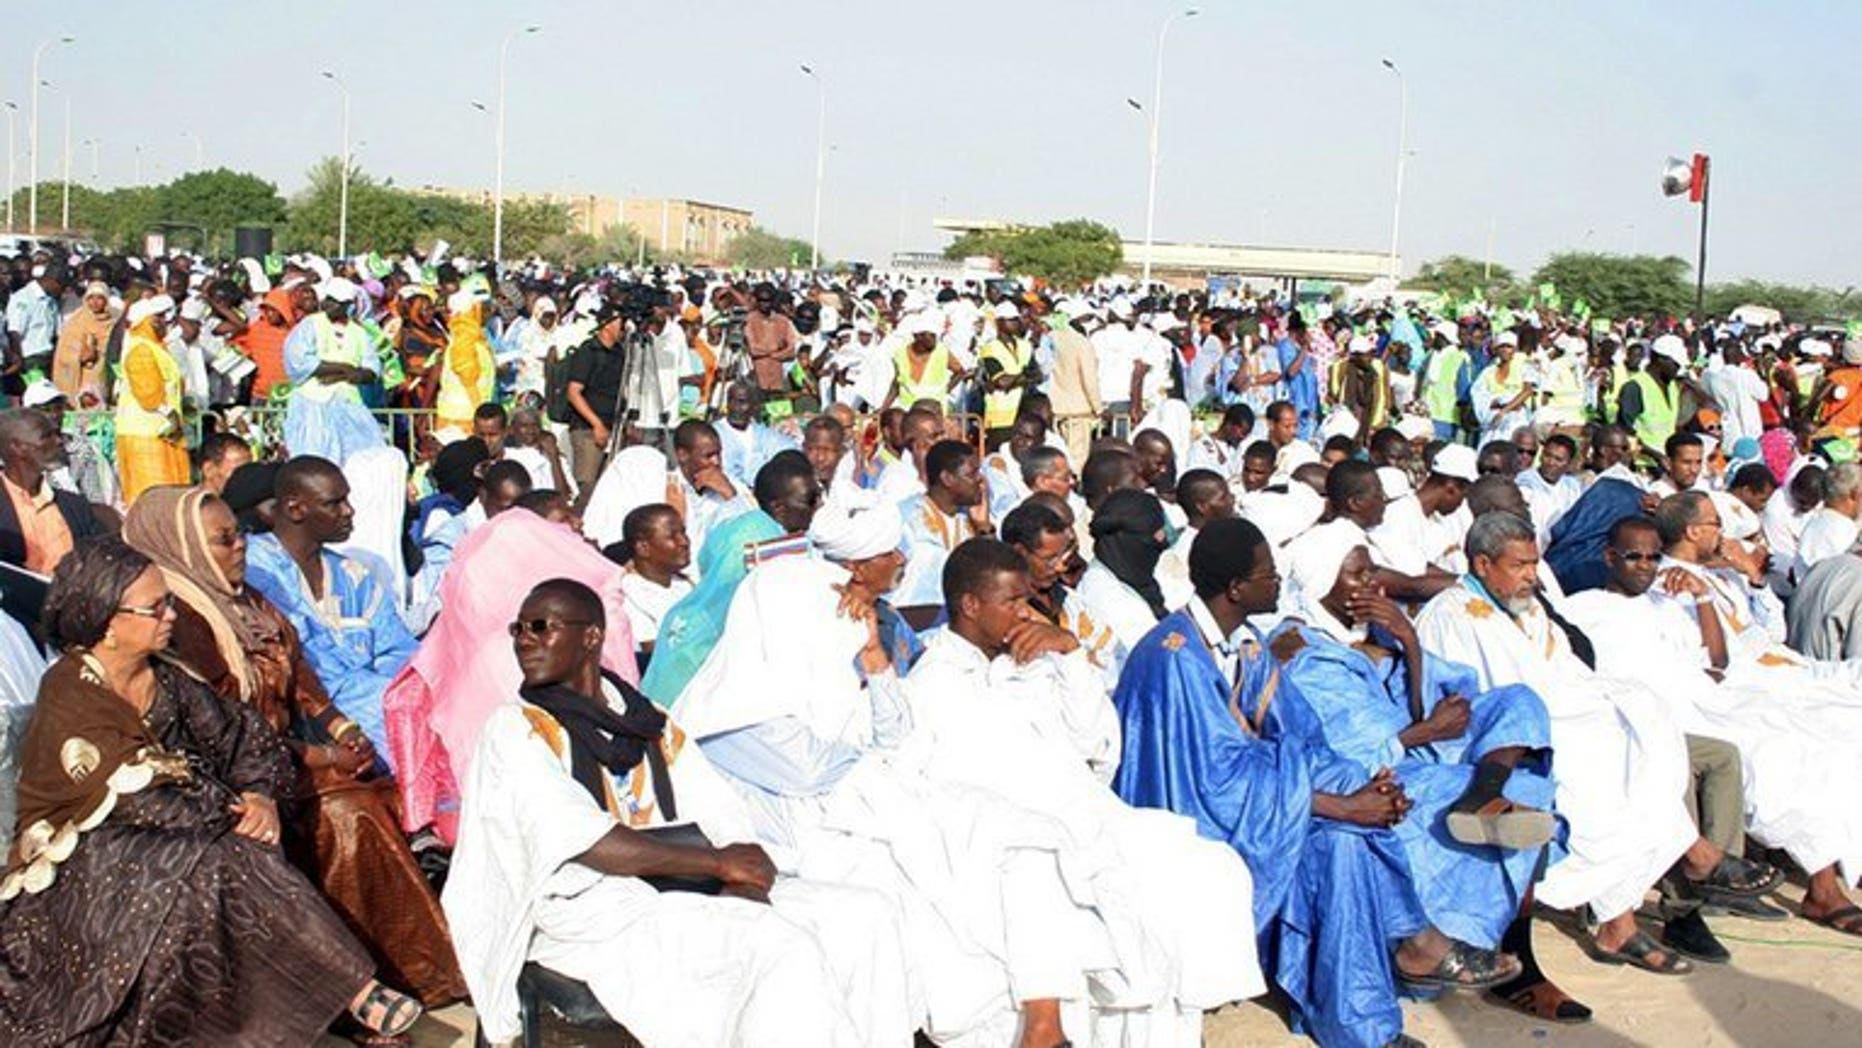 Thousands of supporters of the Mauritanian opposition attend a meeting in Nouakchott on June 23, 2013. Mauritania announced a six-week postponement of its October 12 elections on Thursday after a coalition of opposition parties said it would boycott in a bid to cause the vote to fail.